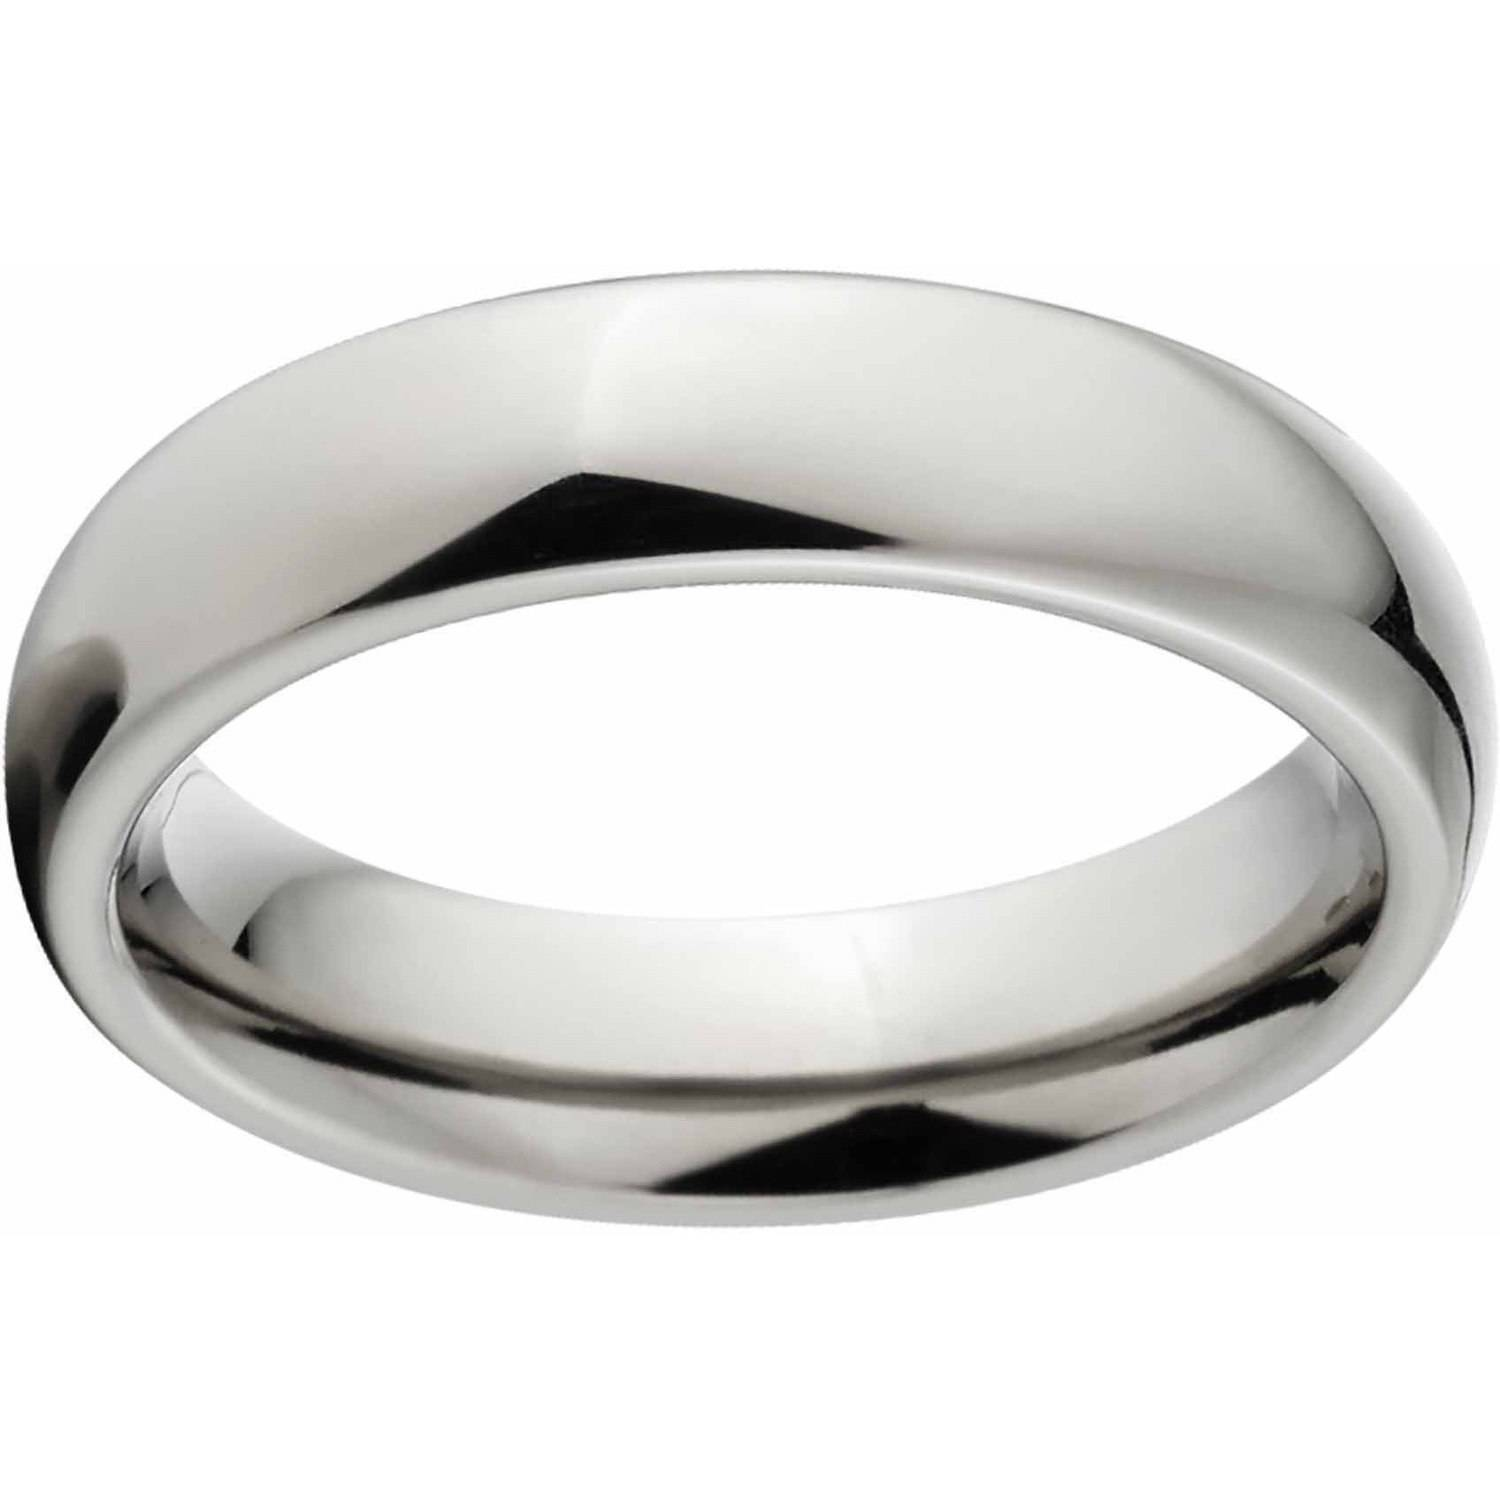 Walmart Wedding Bands.Polished 4mm Titanium Wedding Band With Comfort Fit Design